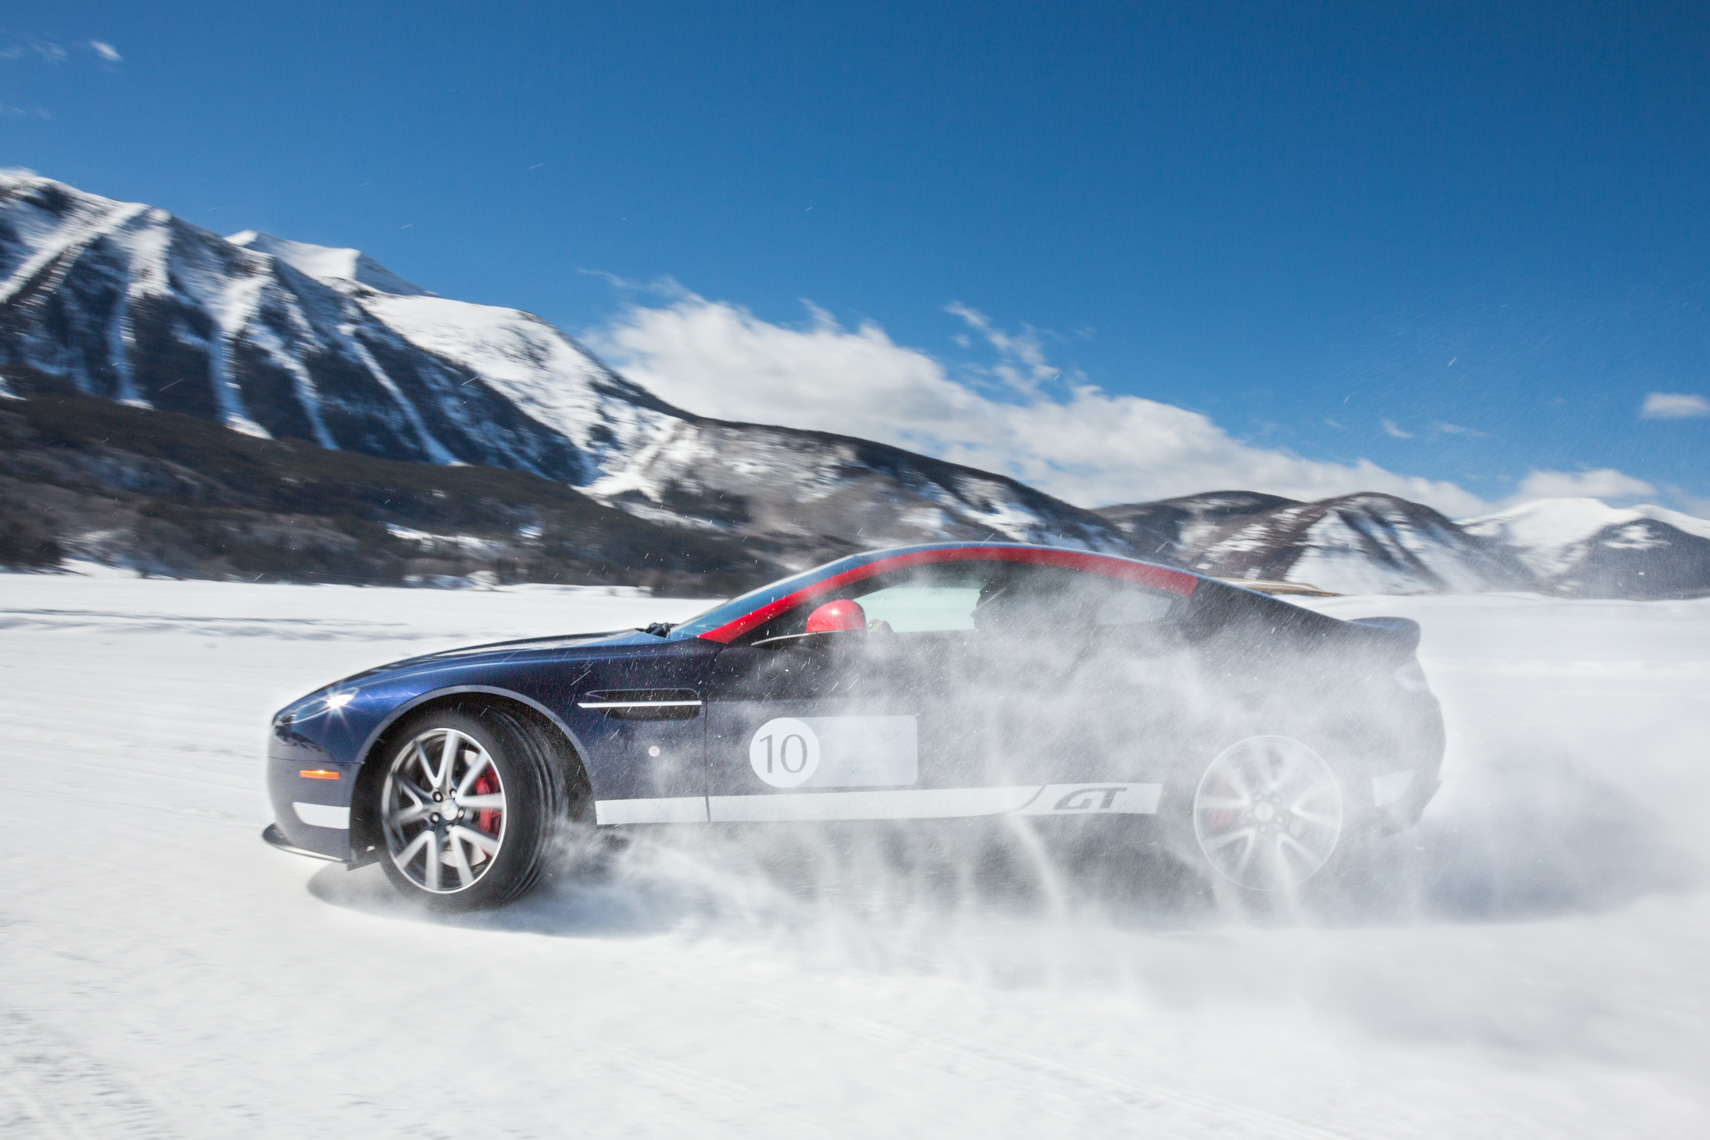 The Aston Martin On Ice Driving Experience in Crested Butte, Colorado.